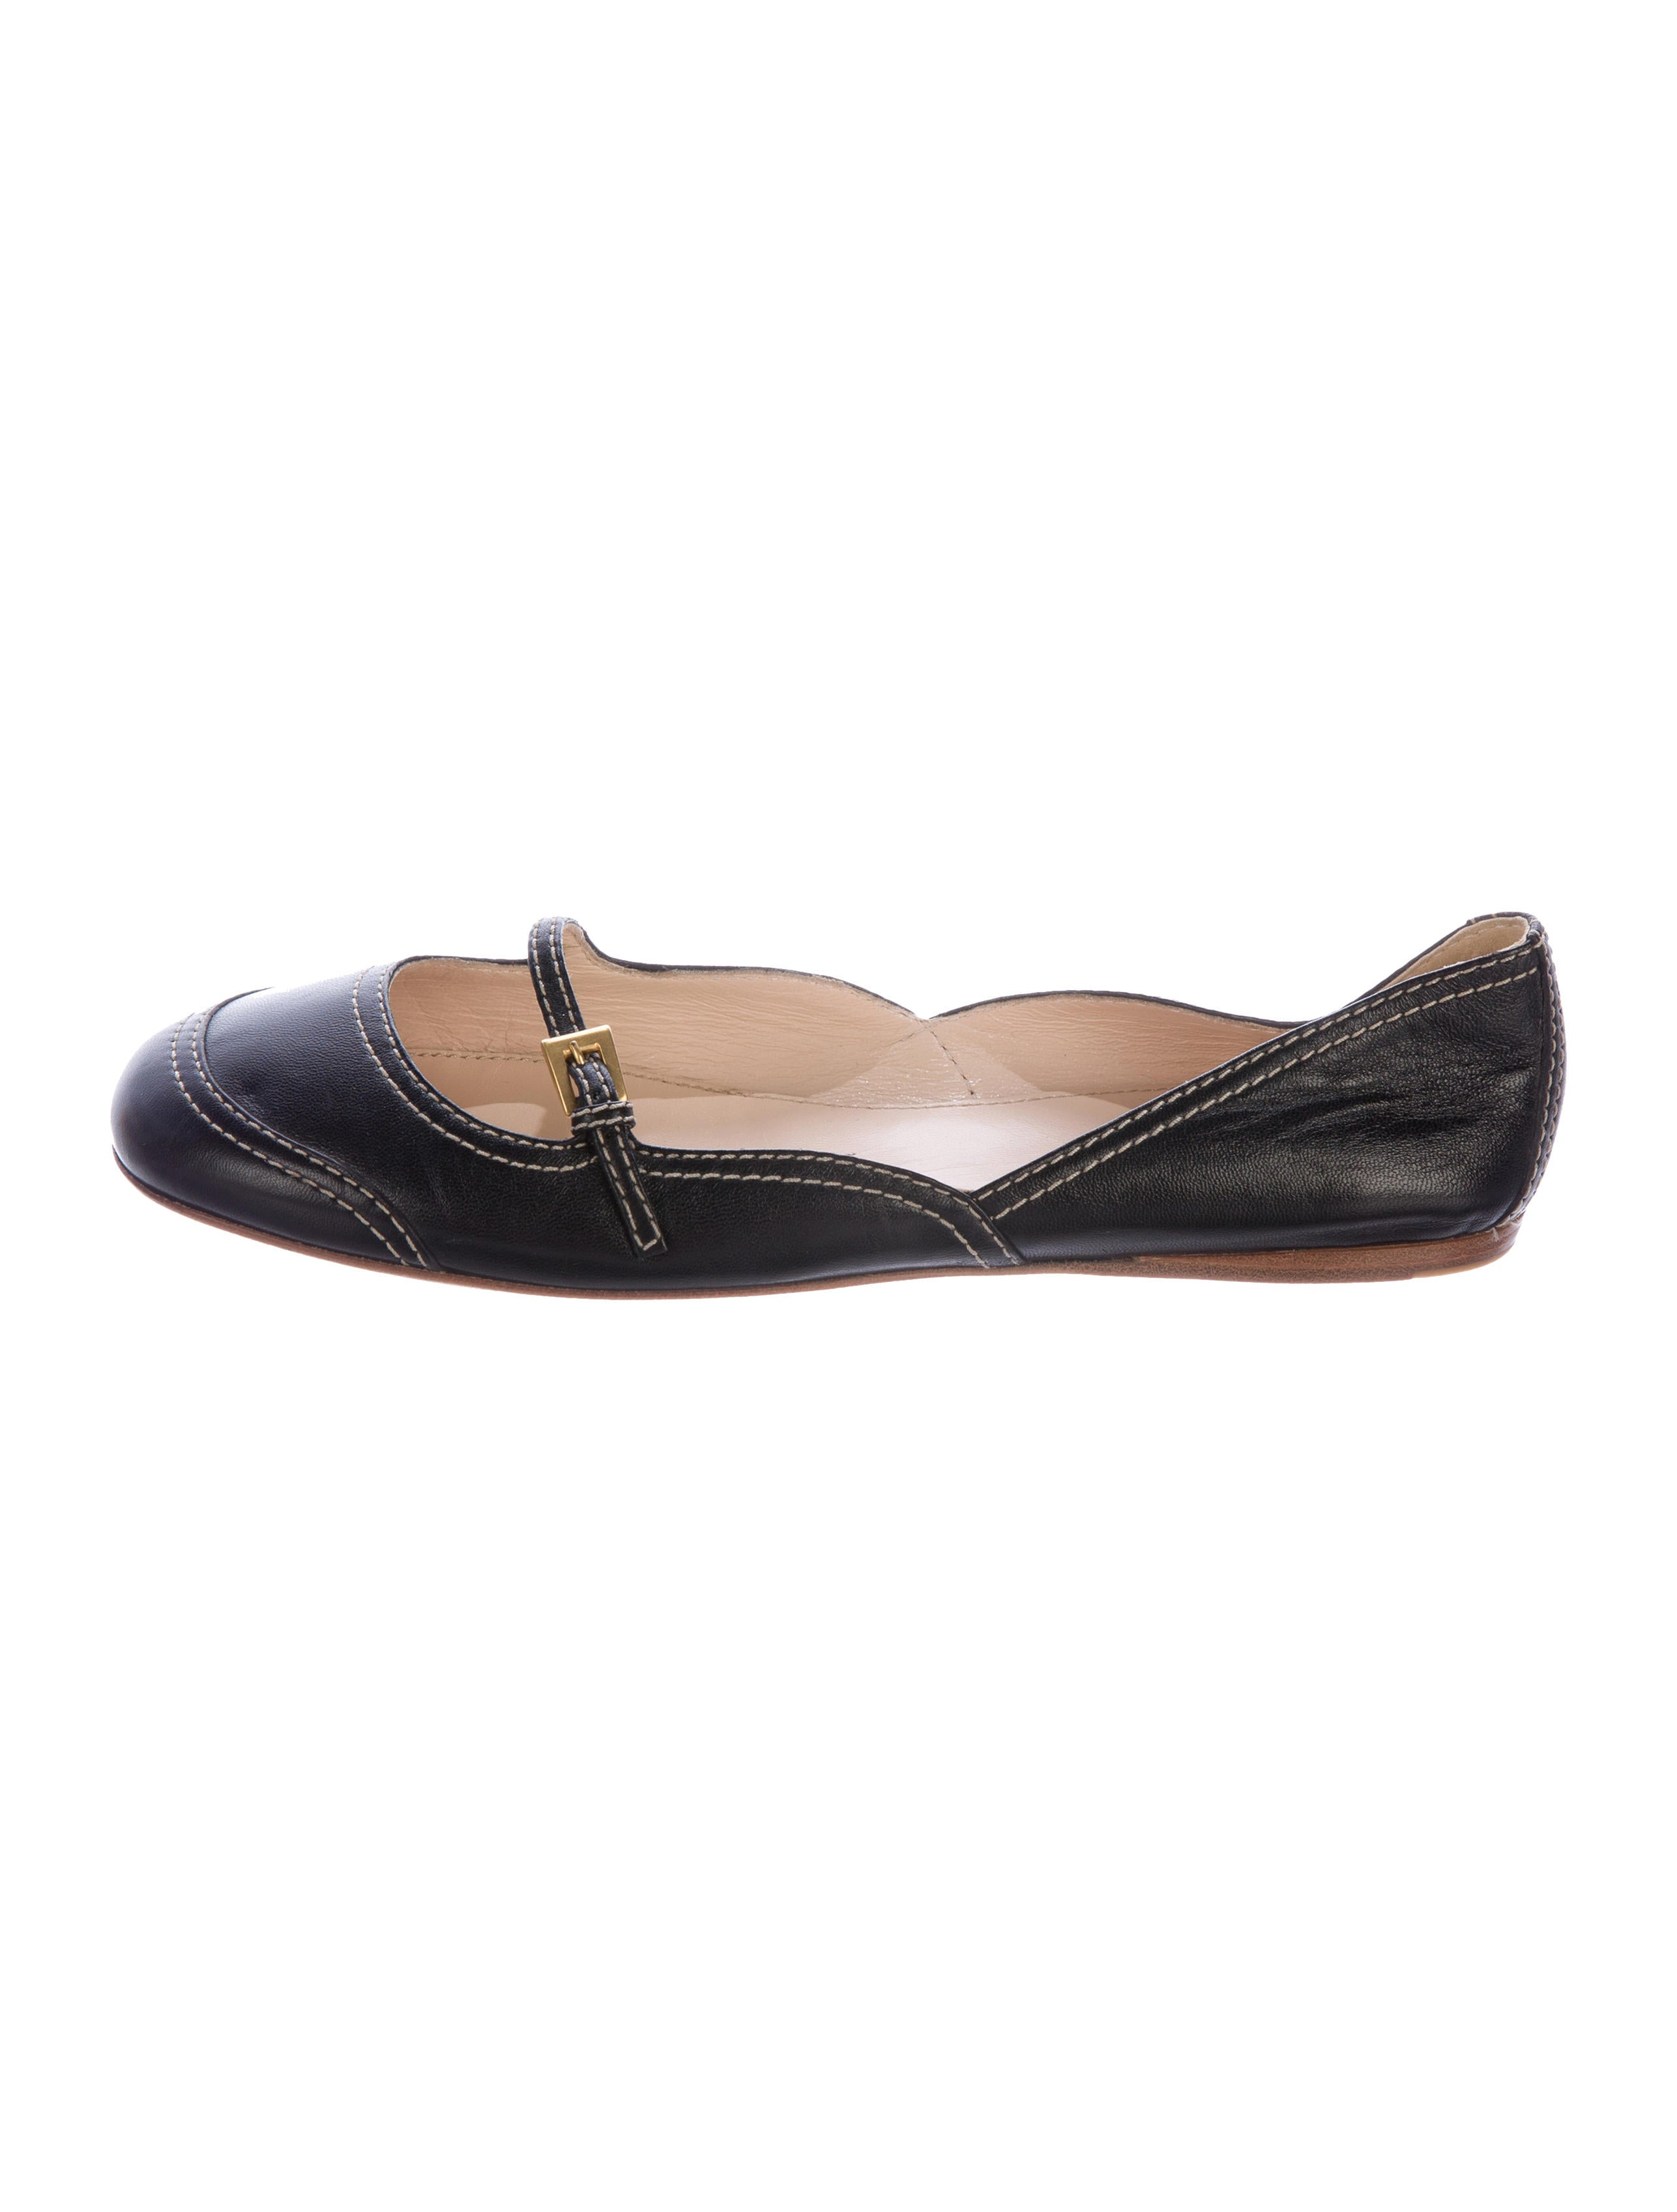 quality from china cheap Prada Leather Round-Toe Flats latest collections sale online sale with paypal DXQ4BNsf